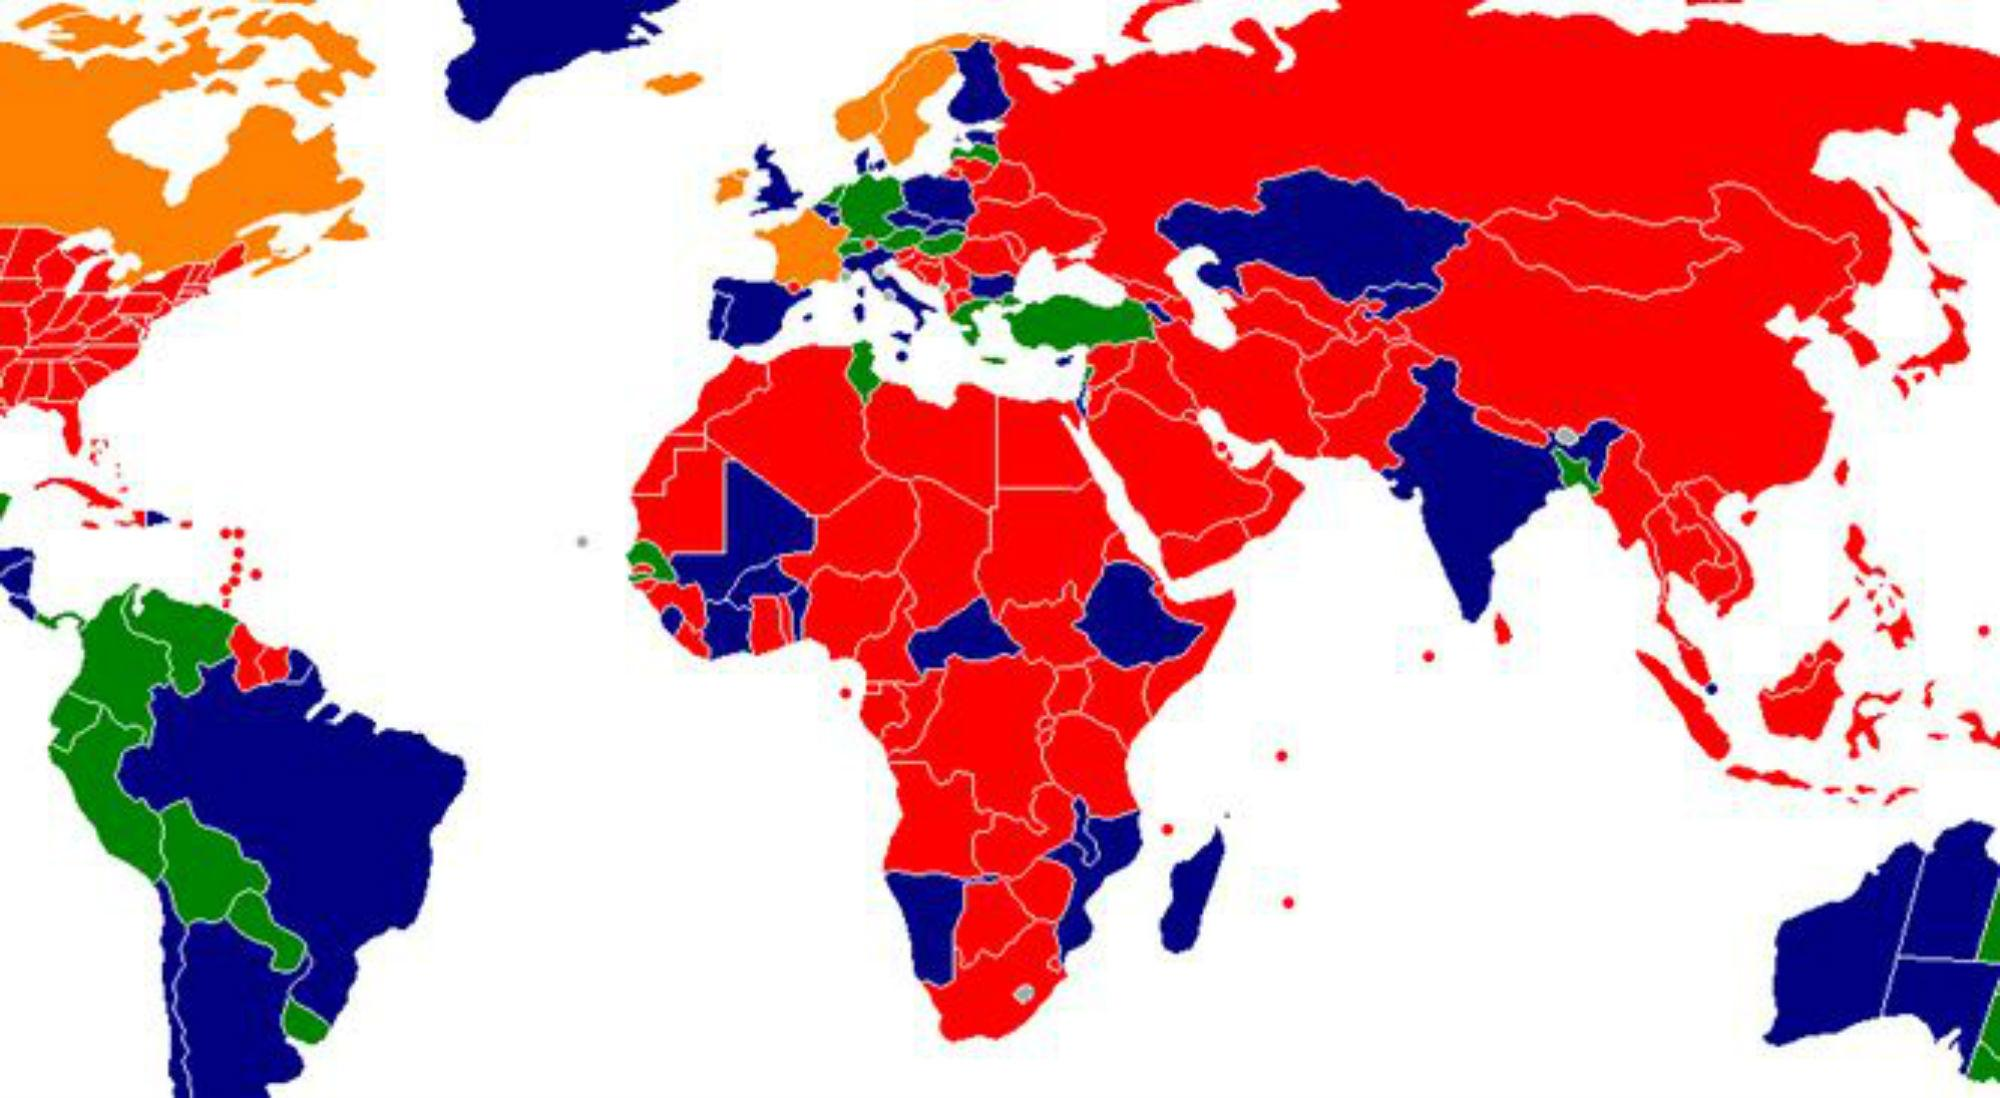 The World Map Of Prostitution Indy100